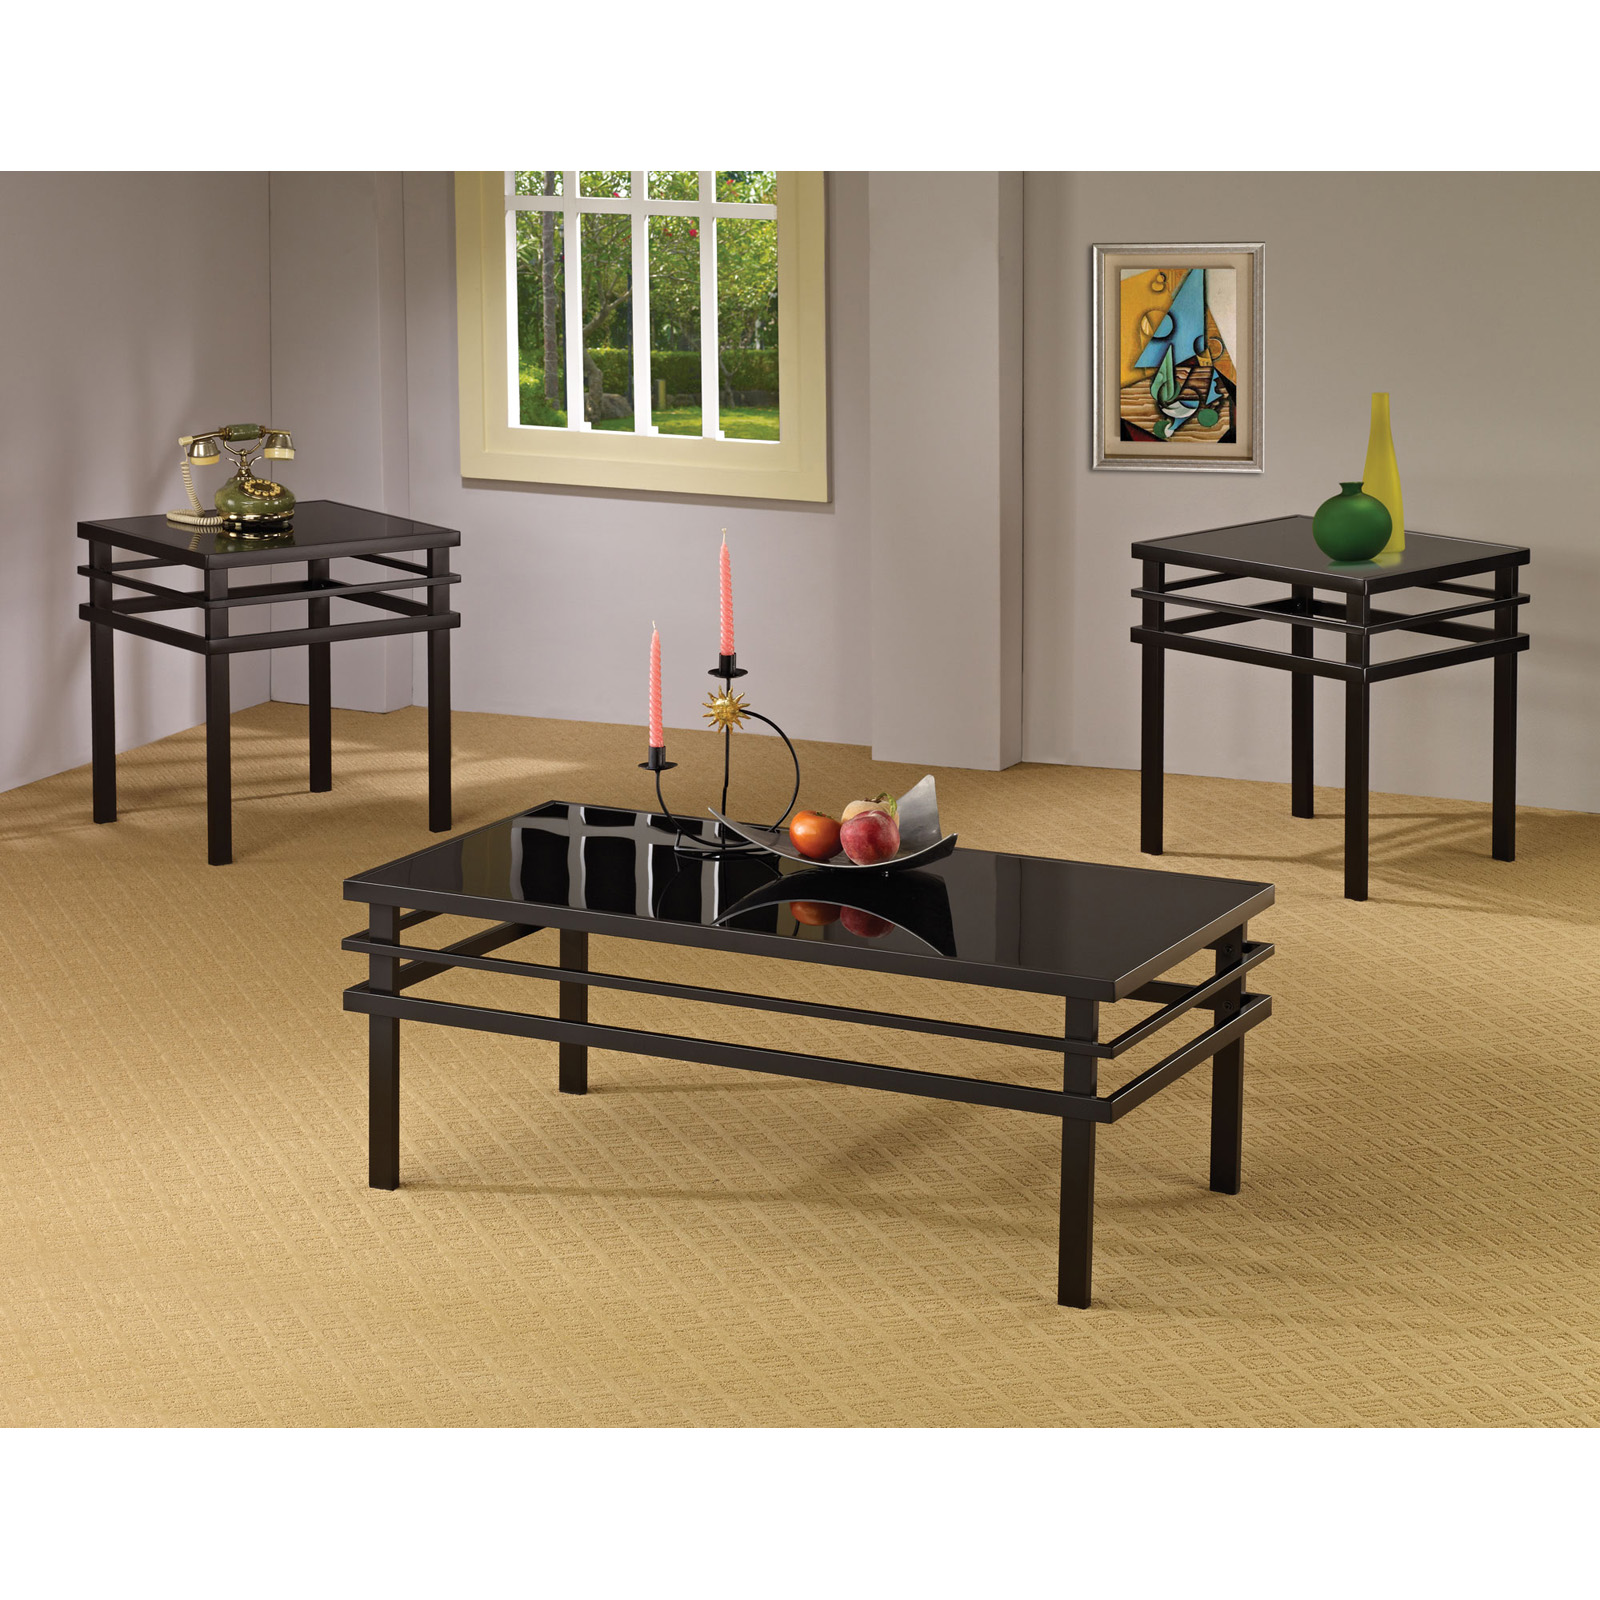 Coaster Furniture 3 Piece Glass Top Coffee Table Set Black